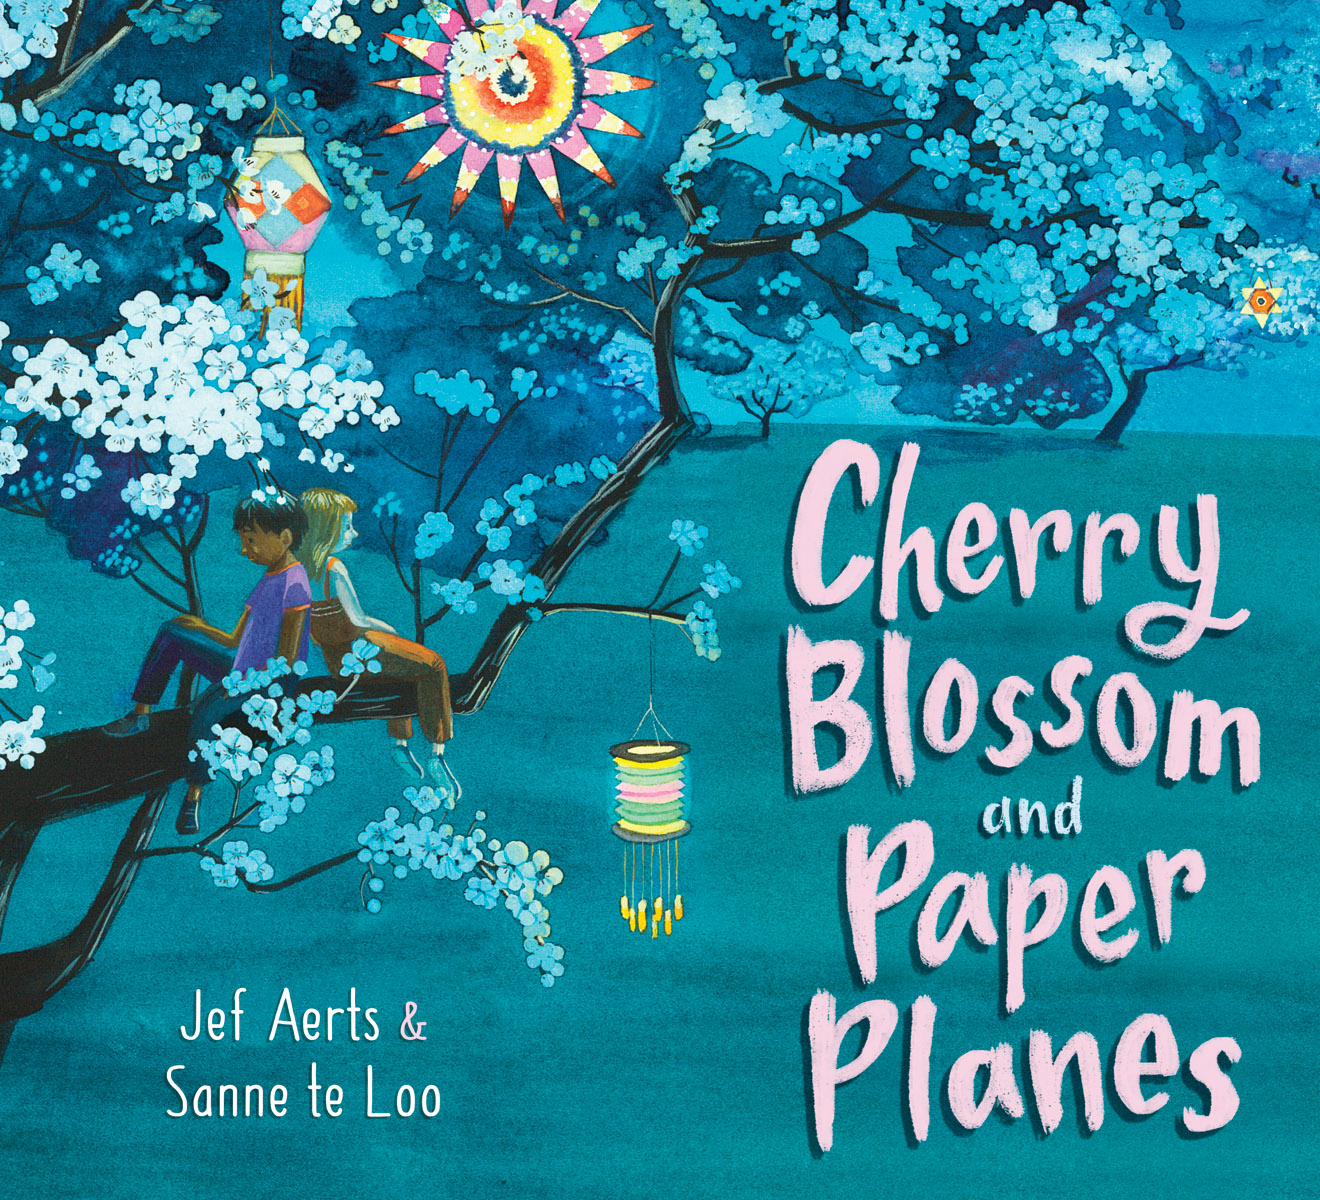 Cherry Blossom And Paper Planes - Floris Books